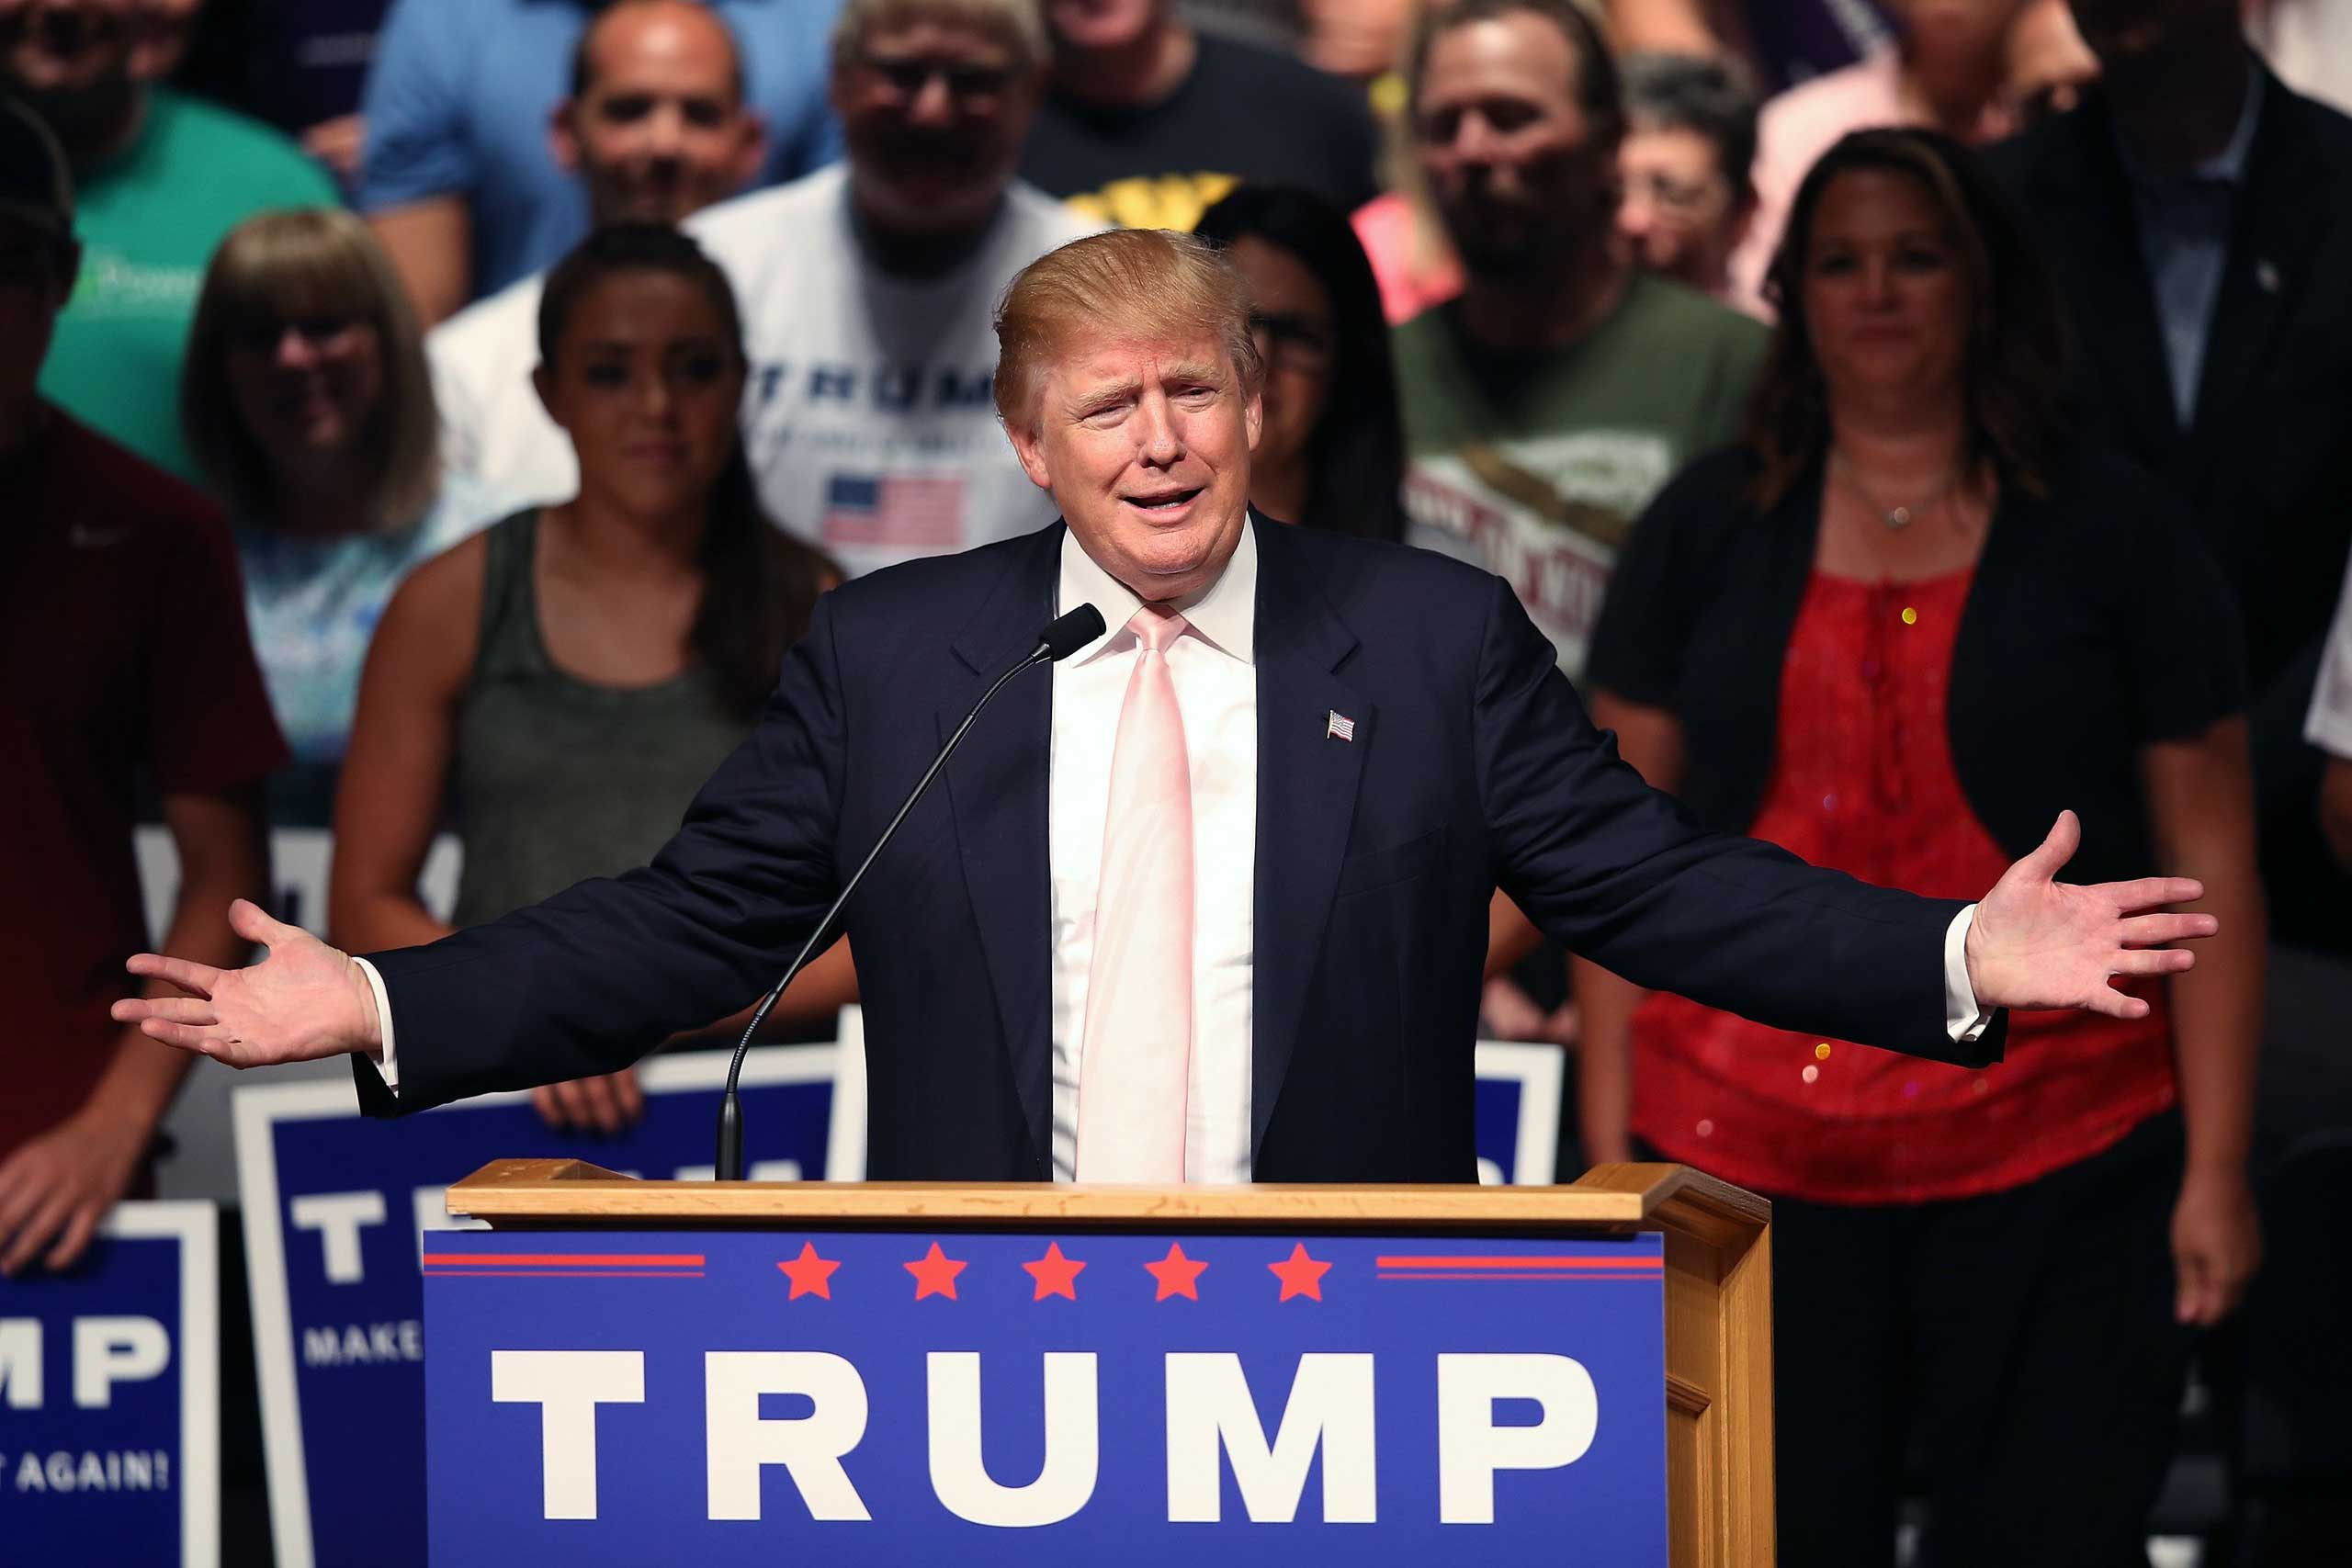 Republican presidential hopeful businessman Donald Trump speaks to guests gathered for a rally on in Oskaloosa, Iowa on July 25, 2015.